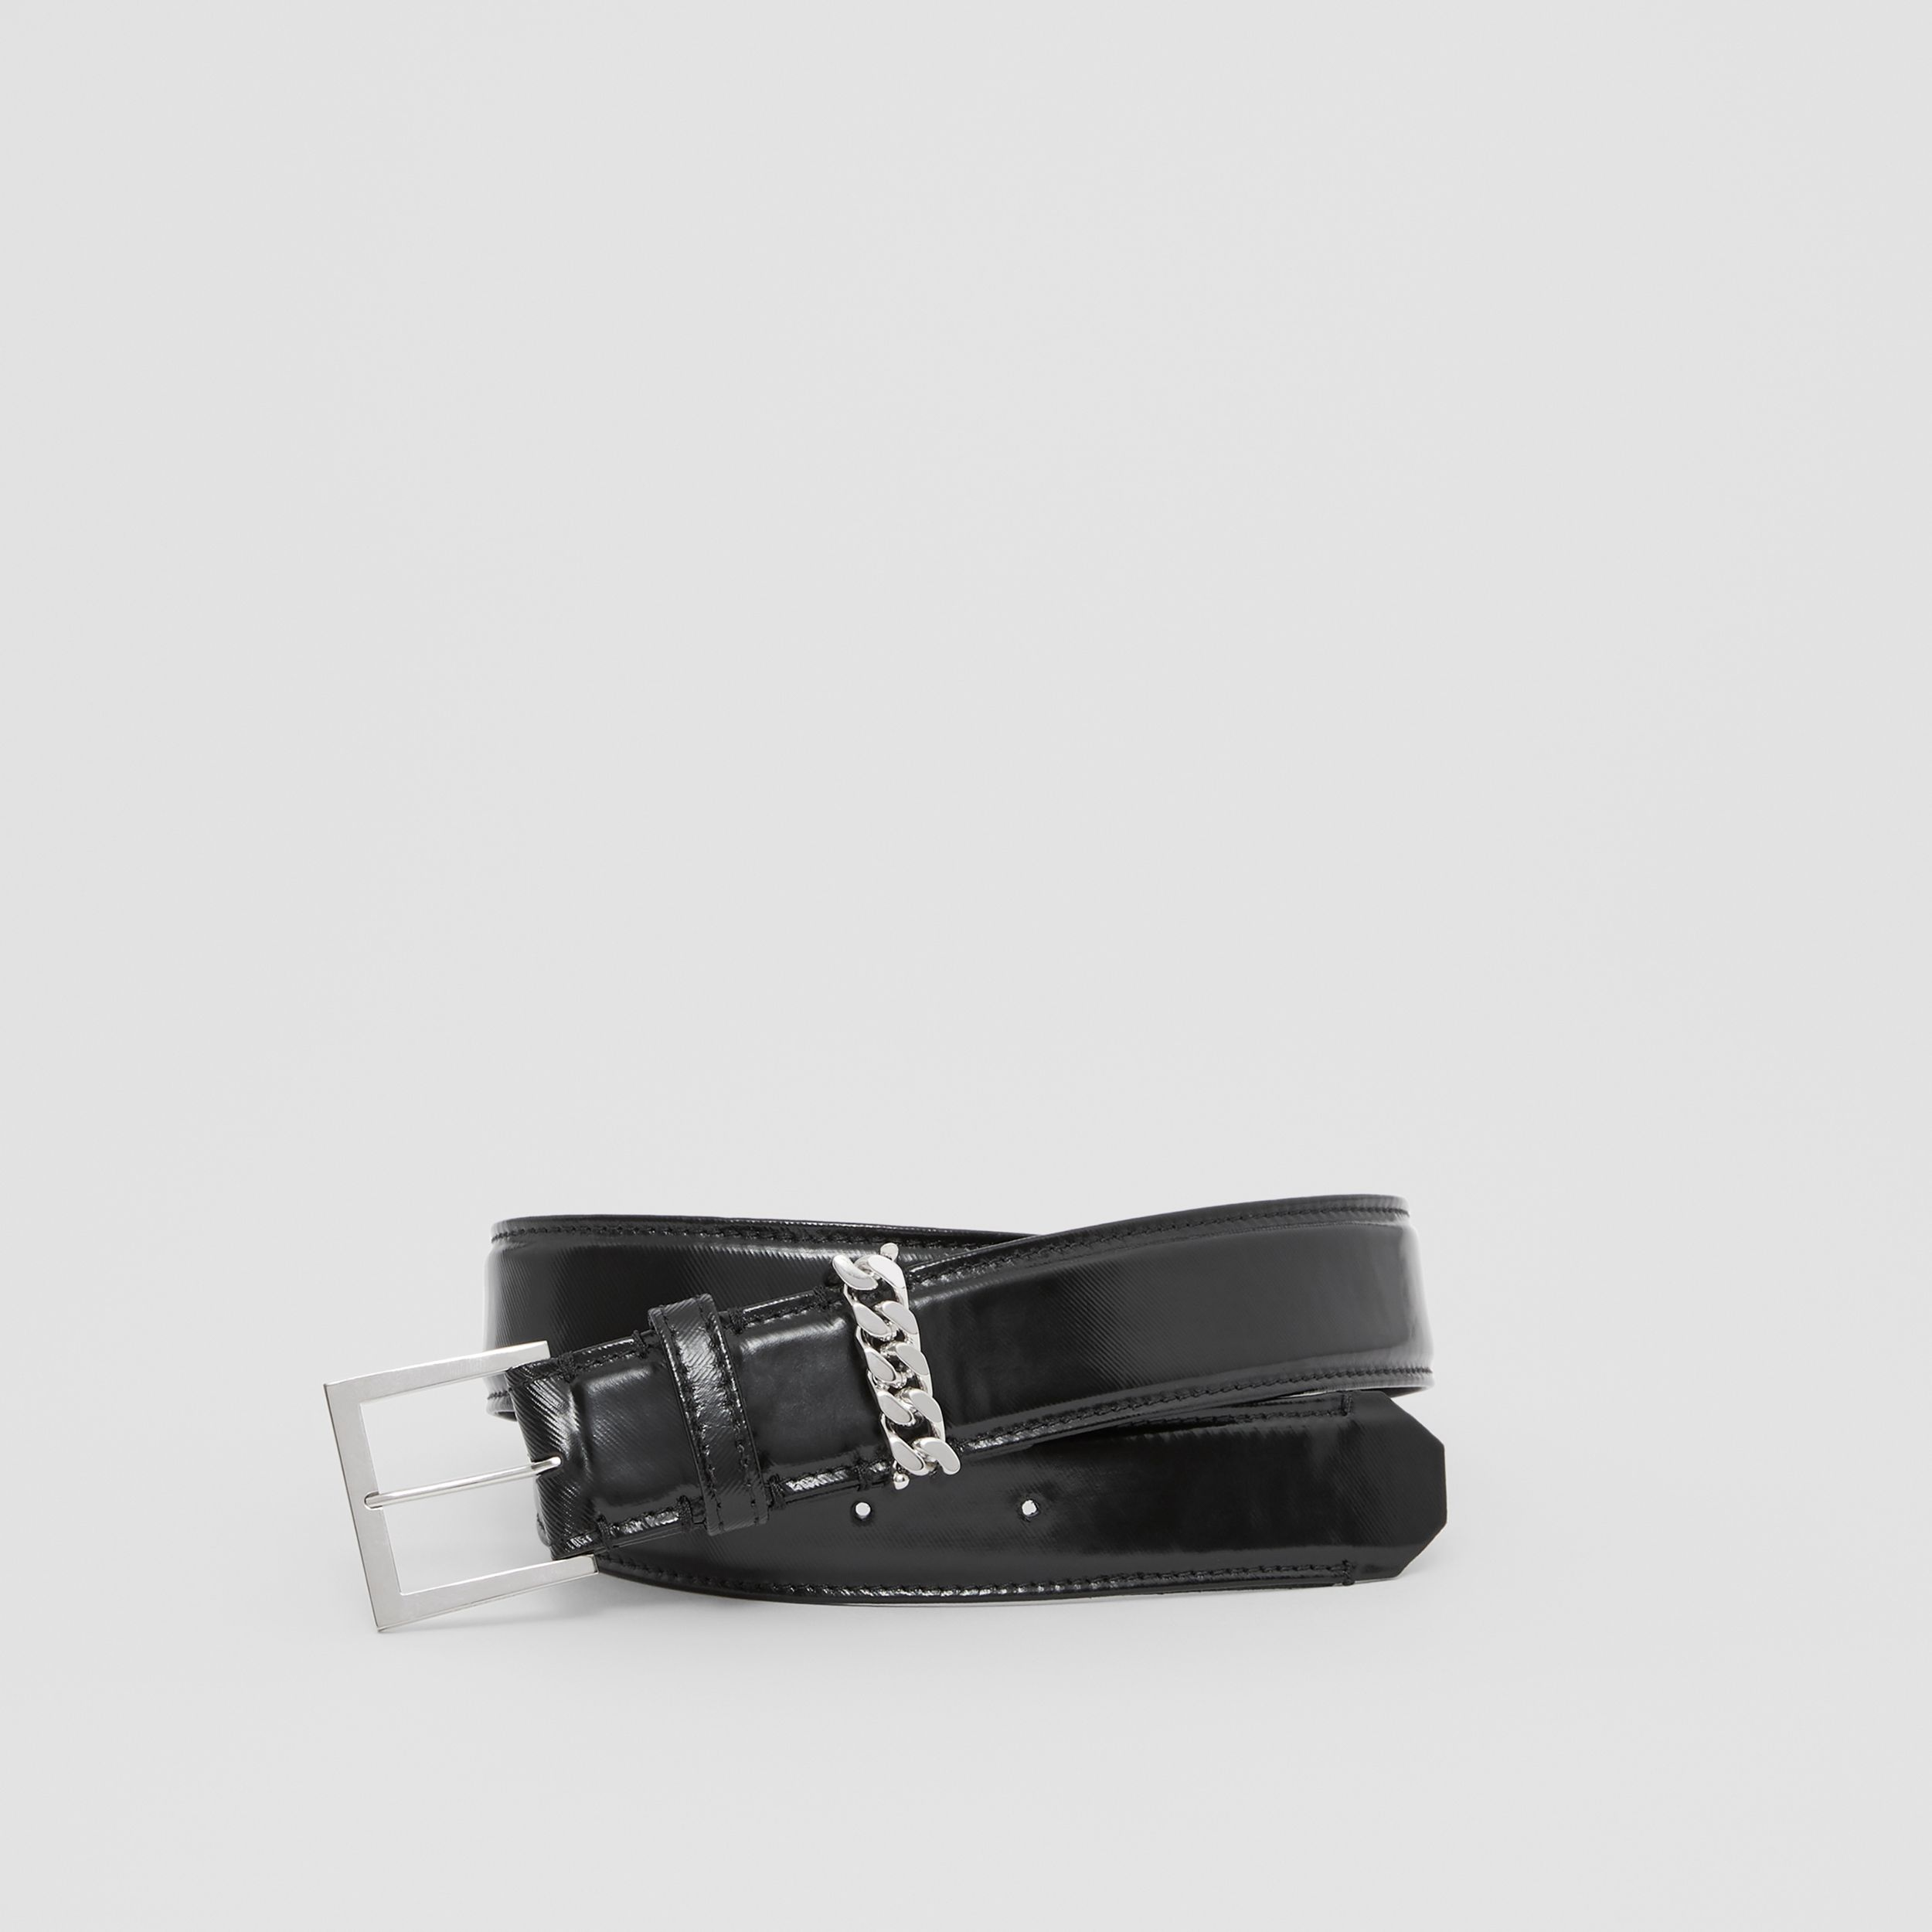 Chain Detail Horseferry Print Coated Canvas Belt in Black/palladium | Burberry - 1